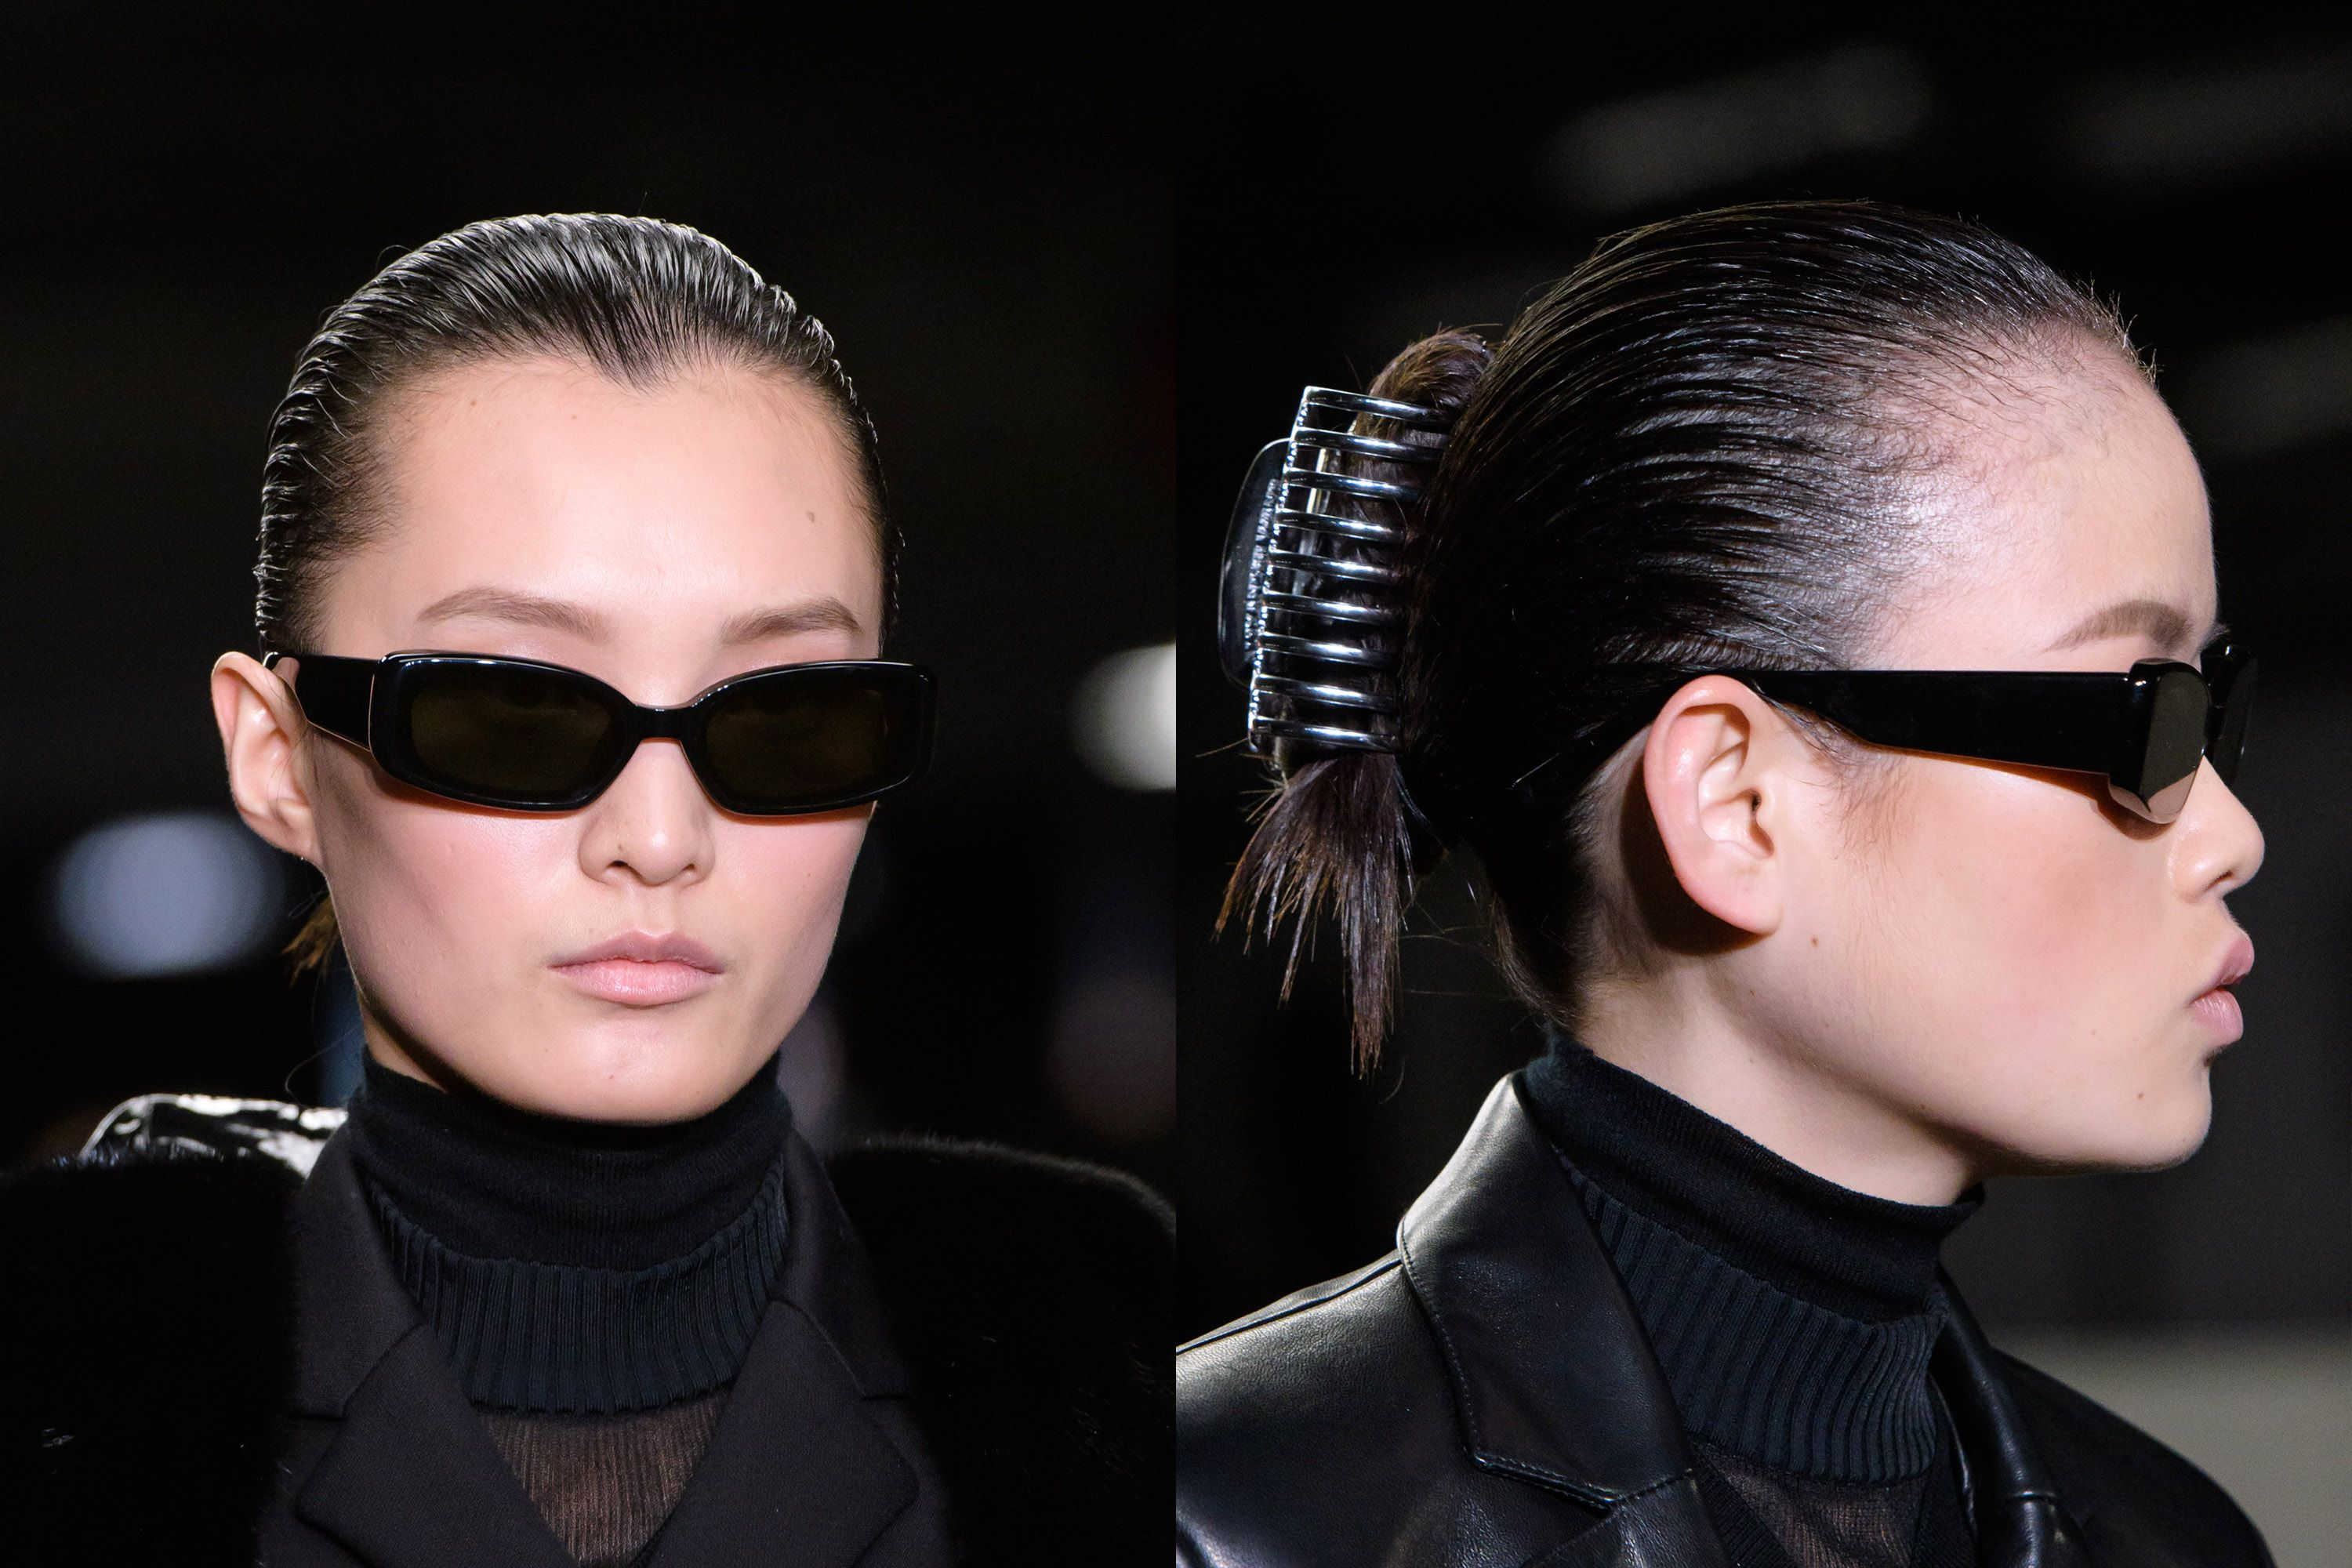 Runway Hairstyles Fall 2017 - Hairstyles By Unixcode